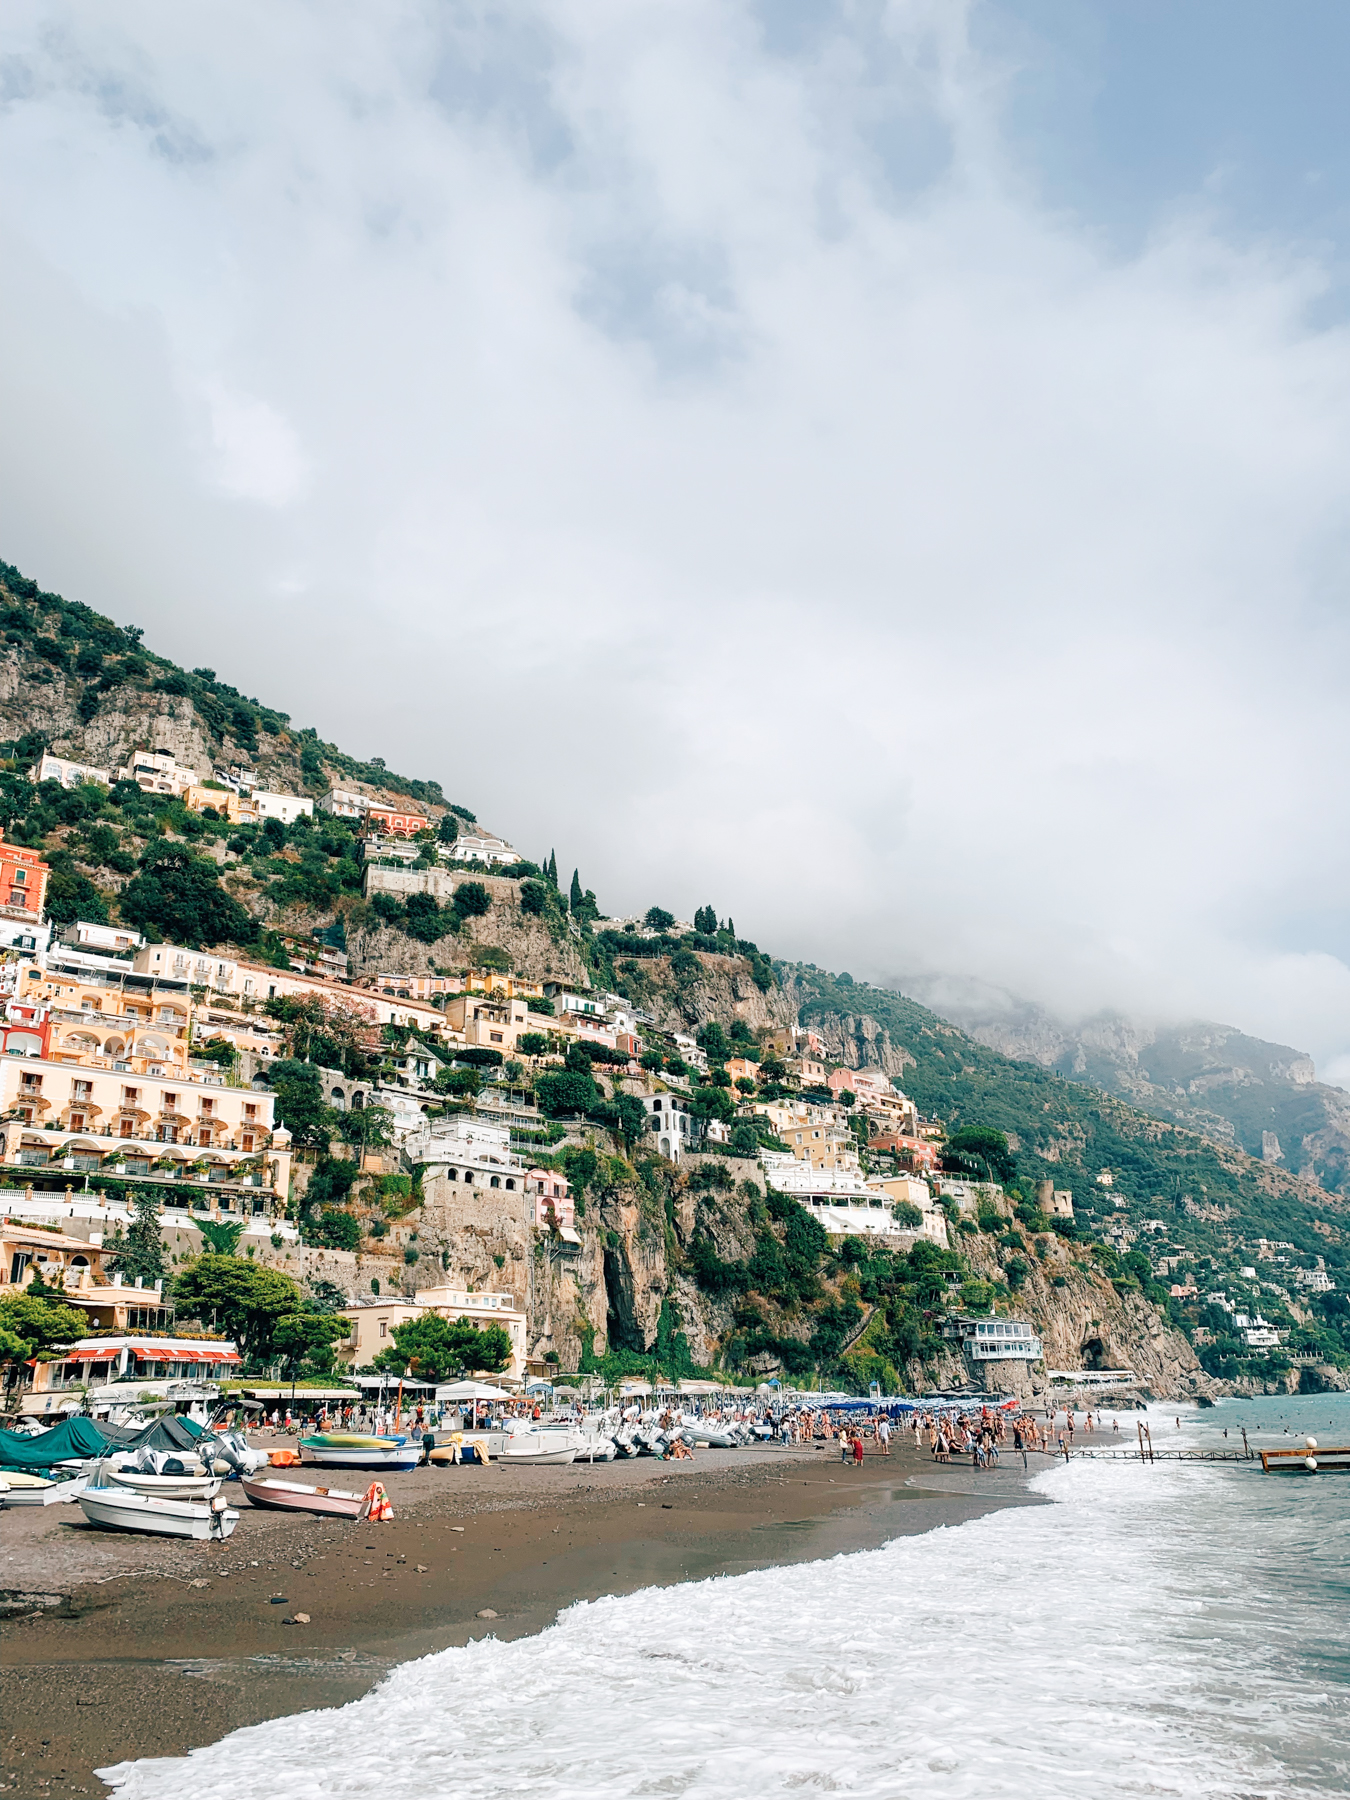 The view of Positano looking up from the pier